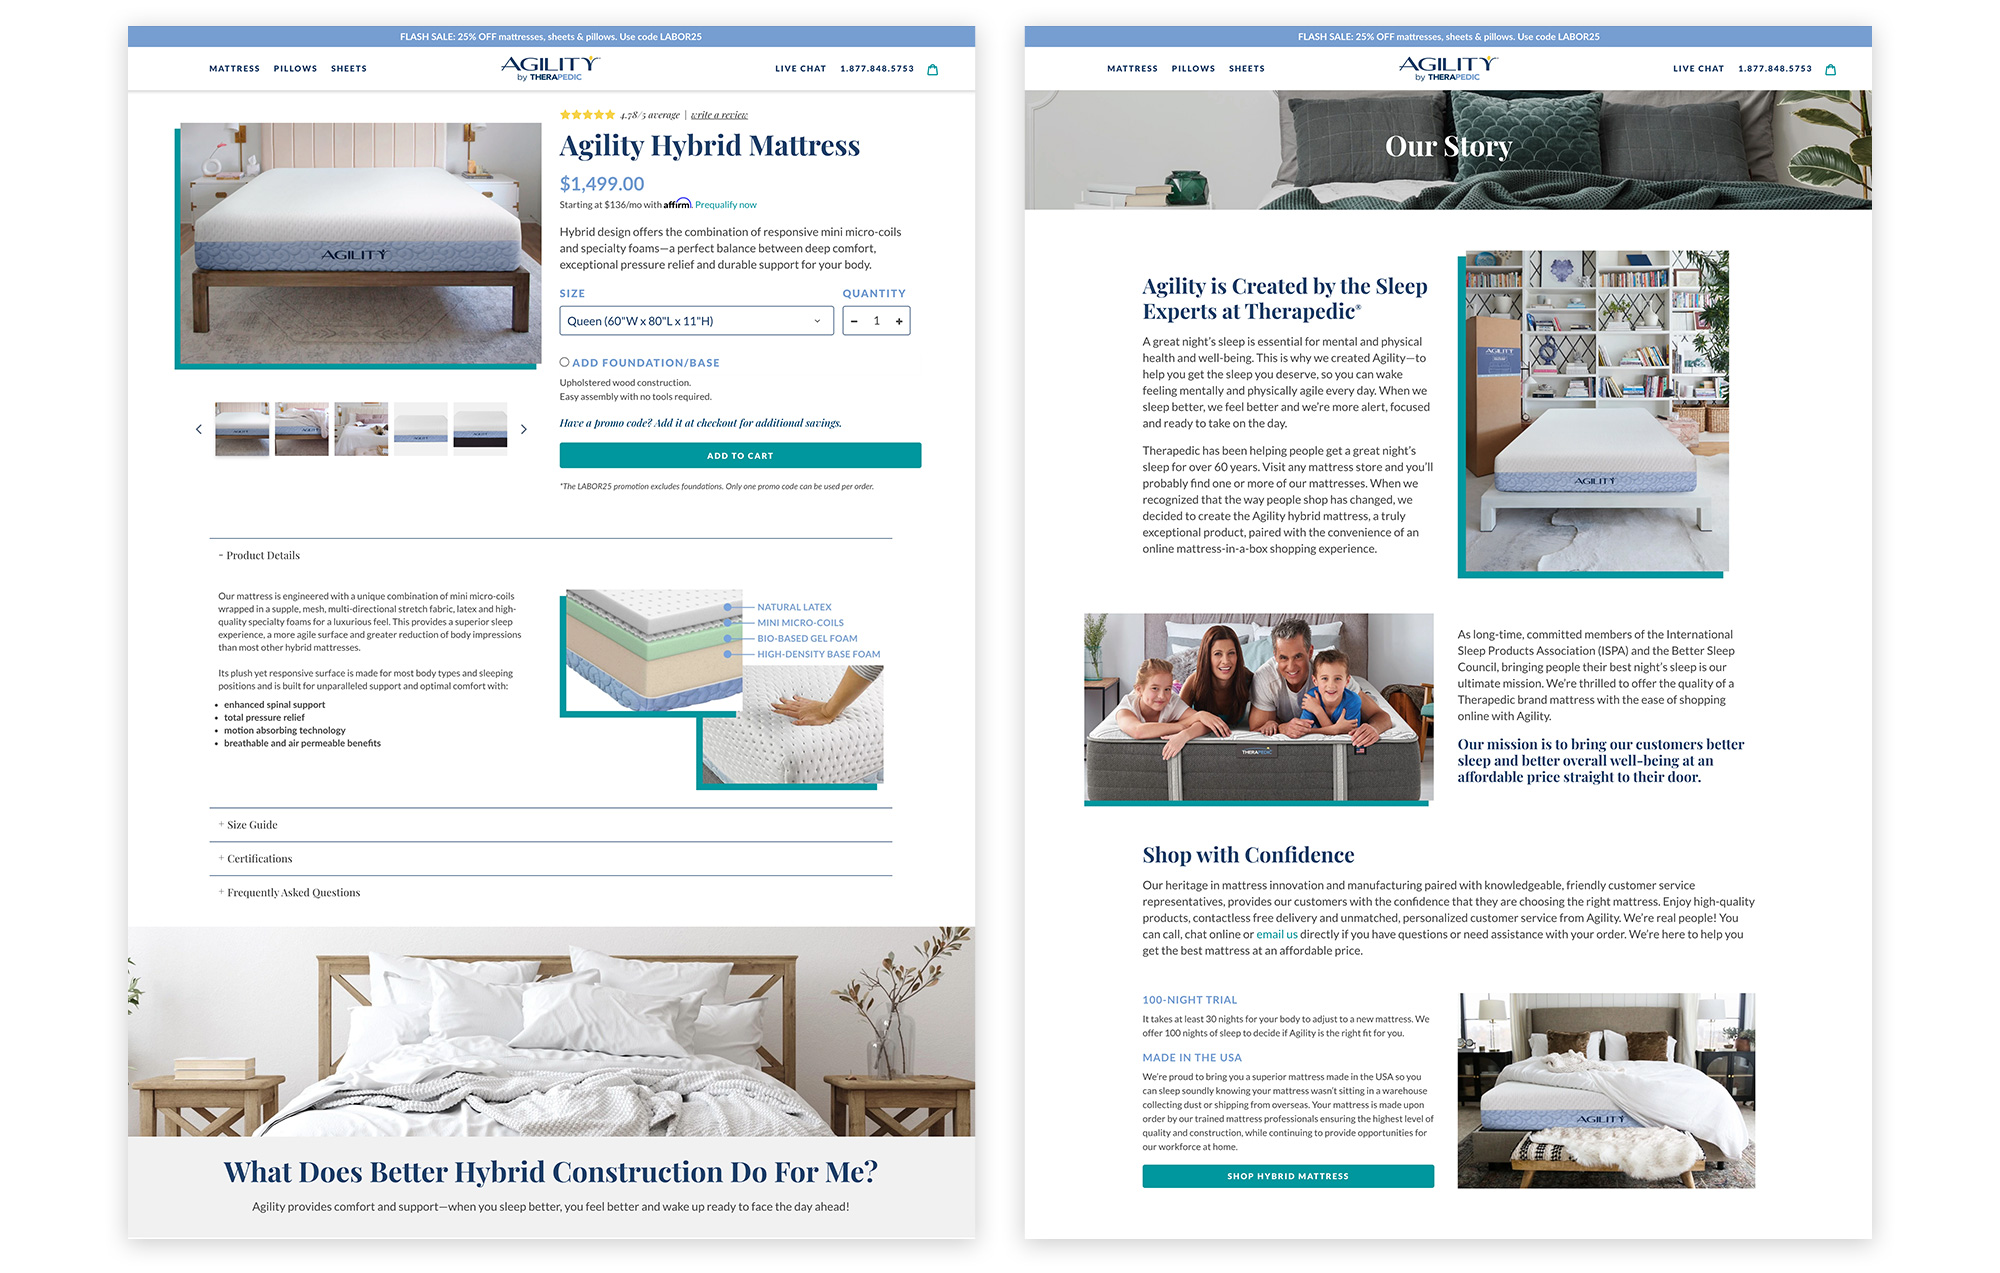 Agility Bed's Product and About Pages provide an engaging and content rich experience, to assist visitors in finding what they need to make a decision to purchase.